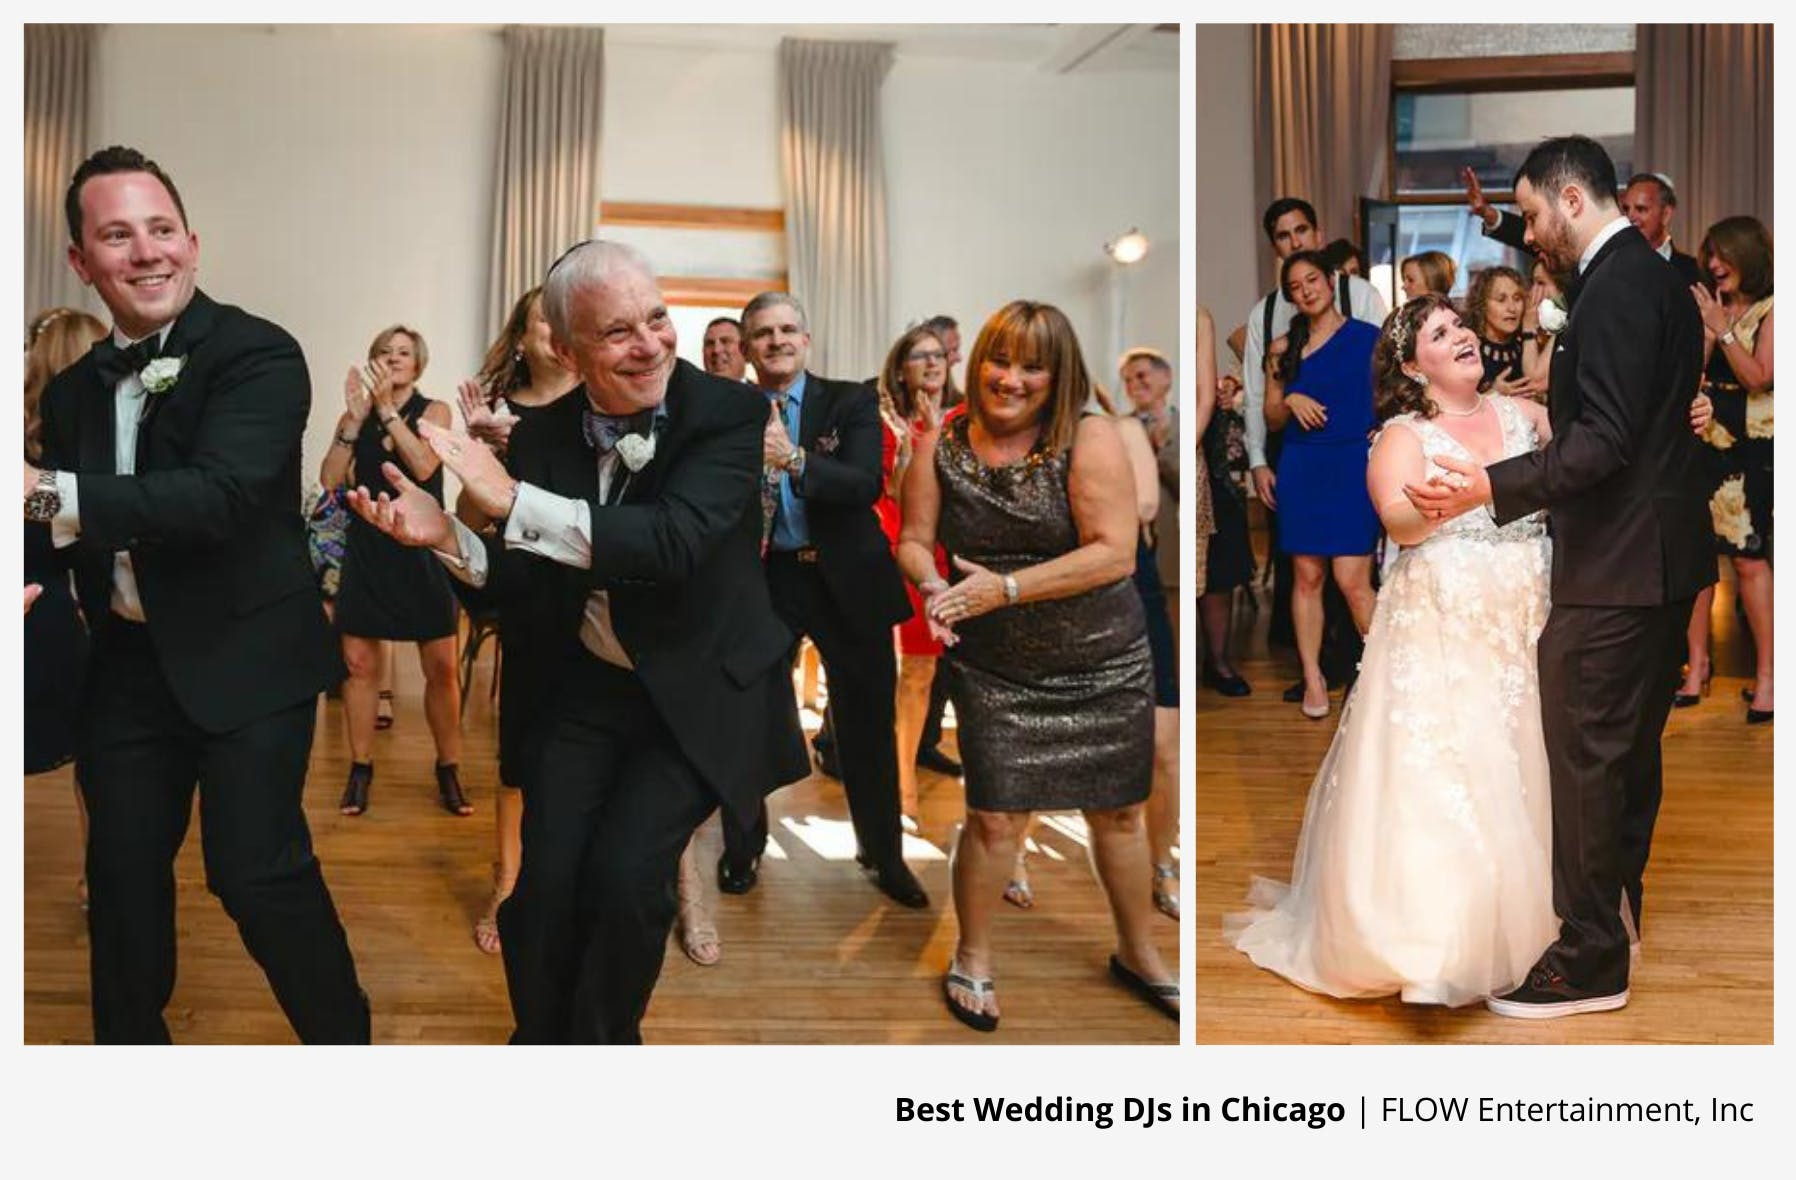 line dance of happy guests on wedding dance floor and couple having first dance to wedding dj entertainment | PartySlate